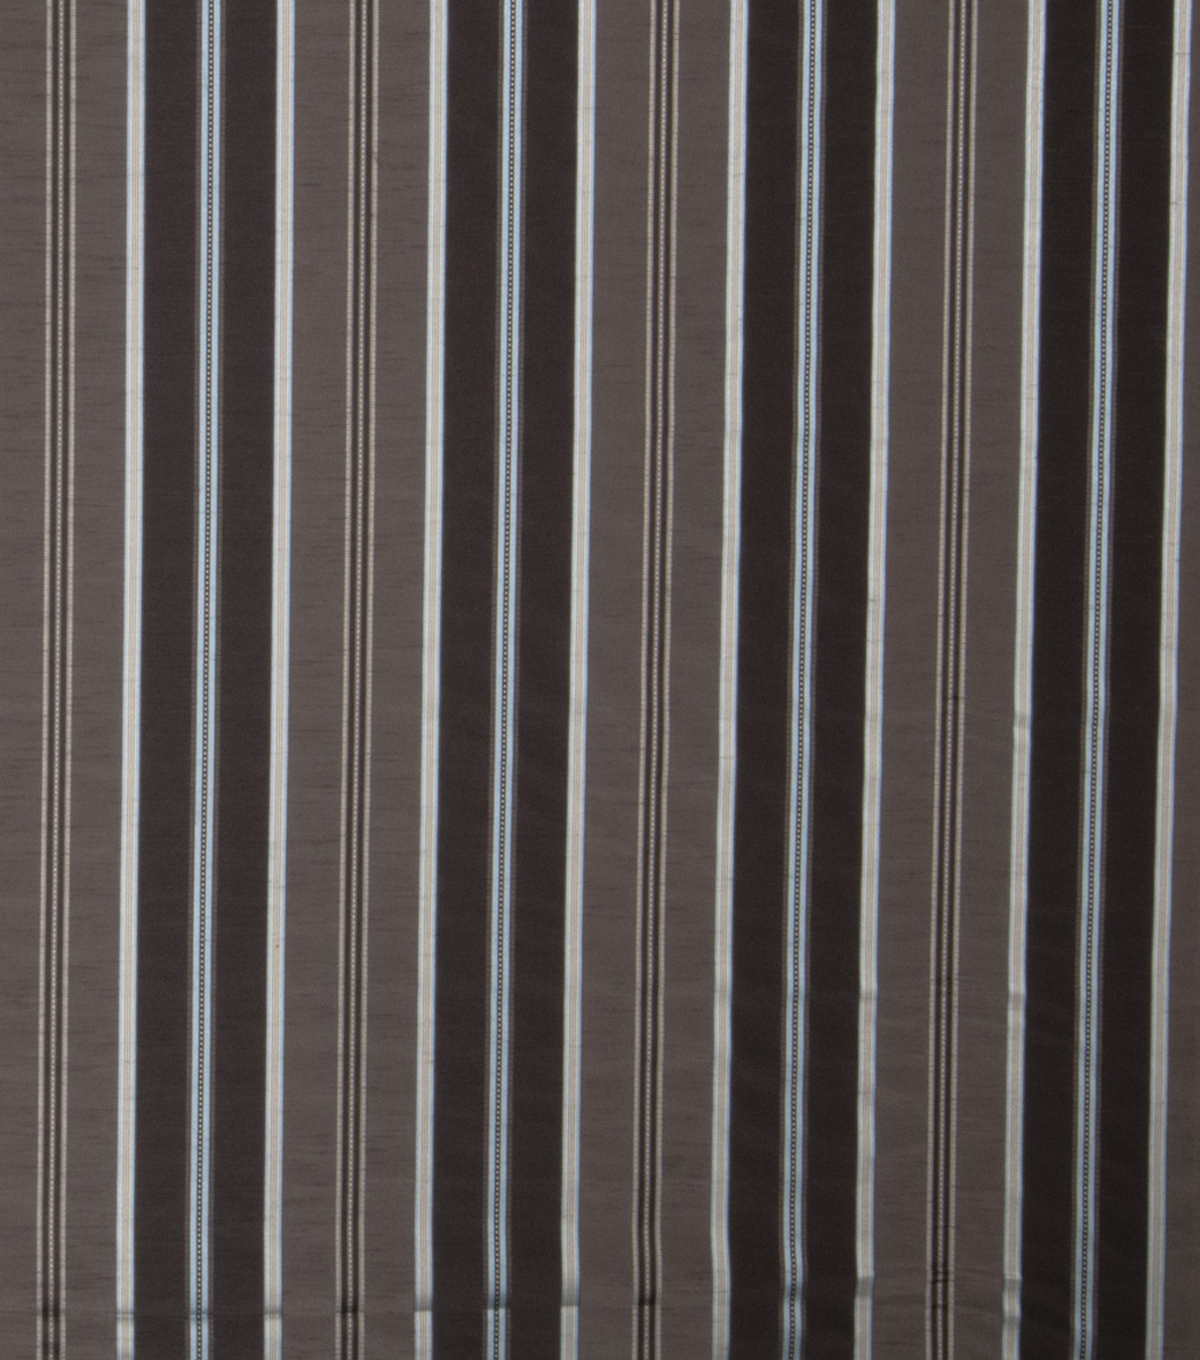 Home Decor 8\u0022x8\u0022 Fabric Swatch-Print Fabric SMC Designs Asiago Walnut